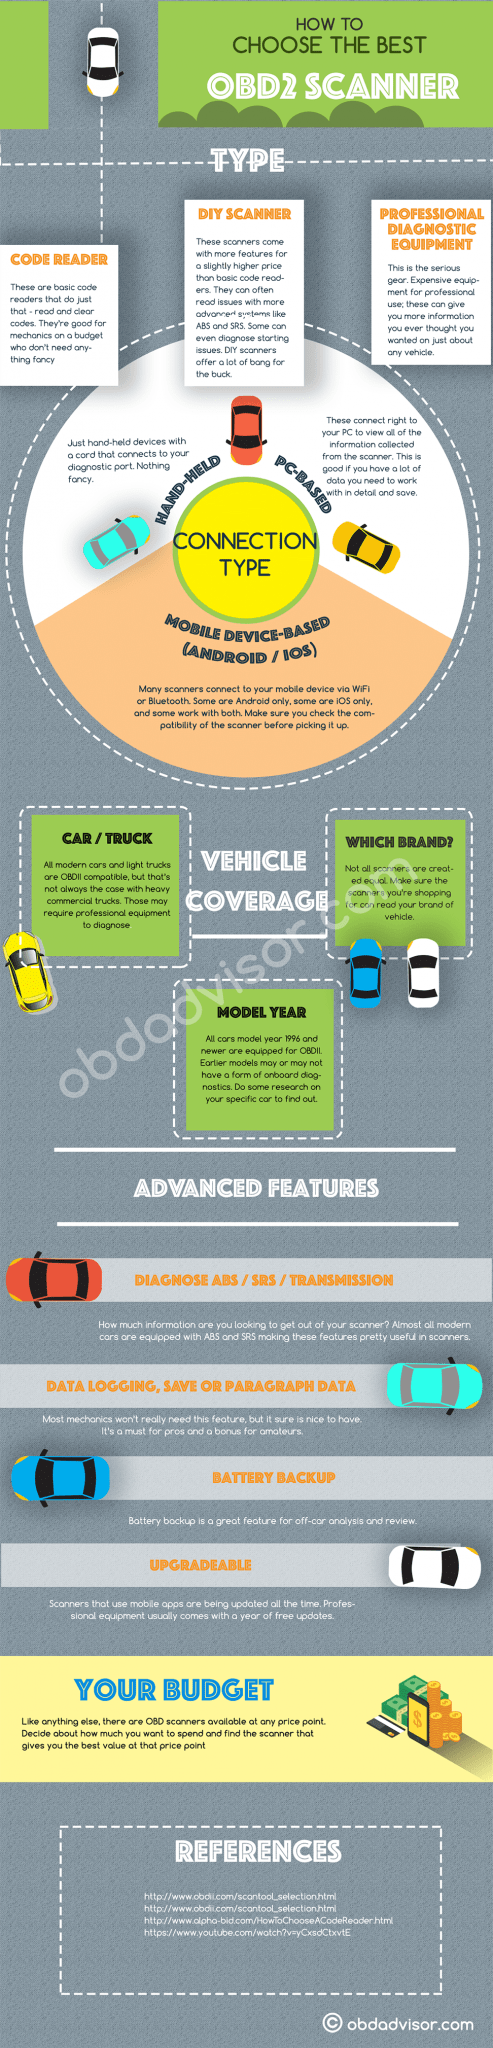 choose a best obd2 scanner inforgraphic